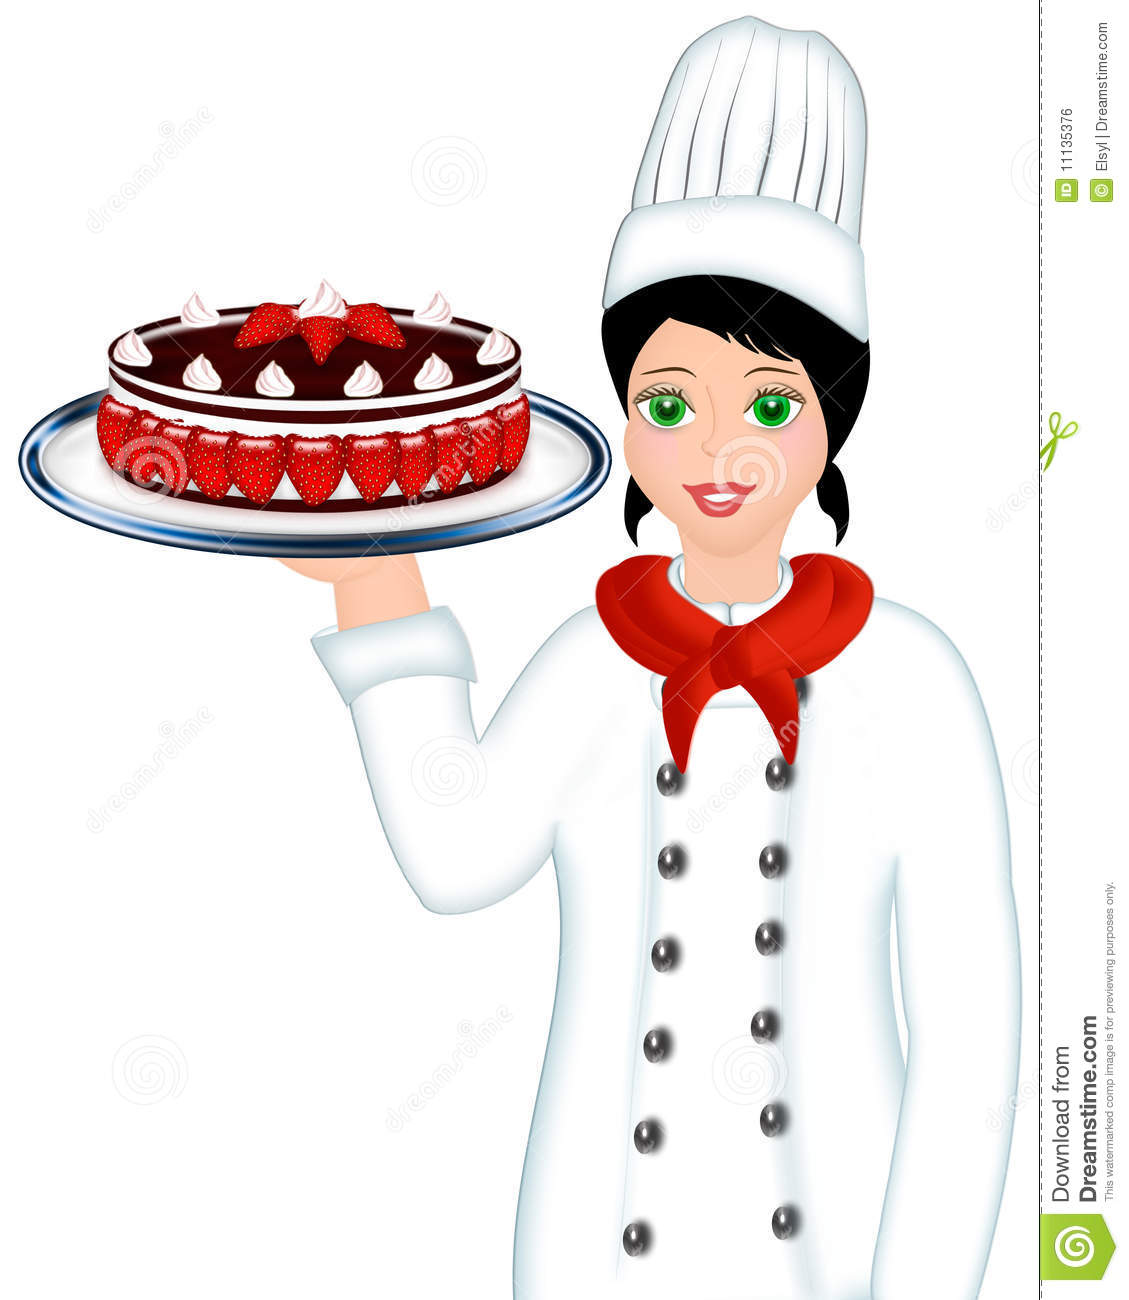 Kitchen Center Clip Art: Chef Holding Cake Royalty Free Stock Image